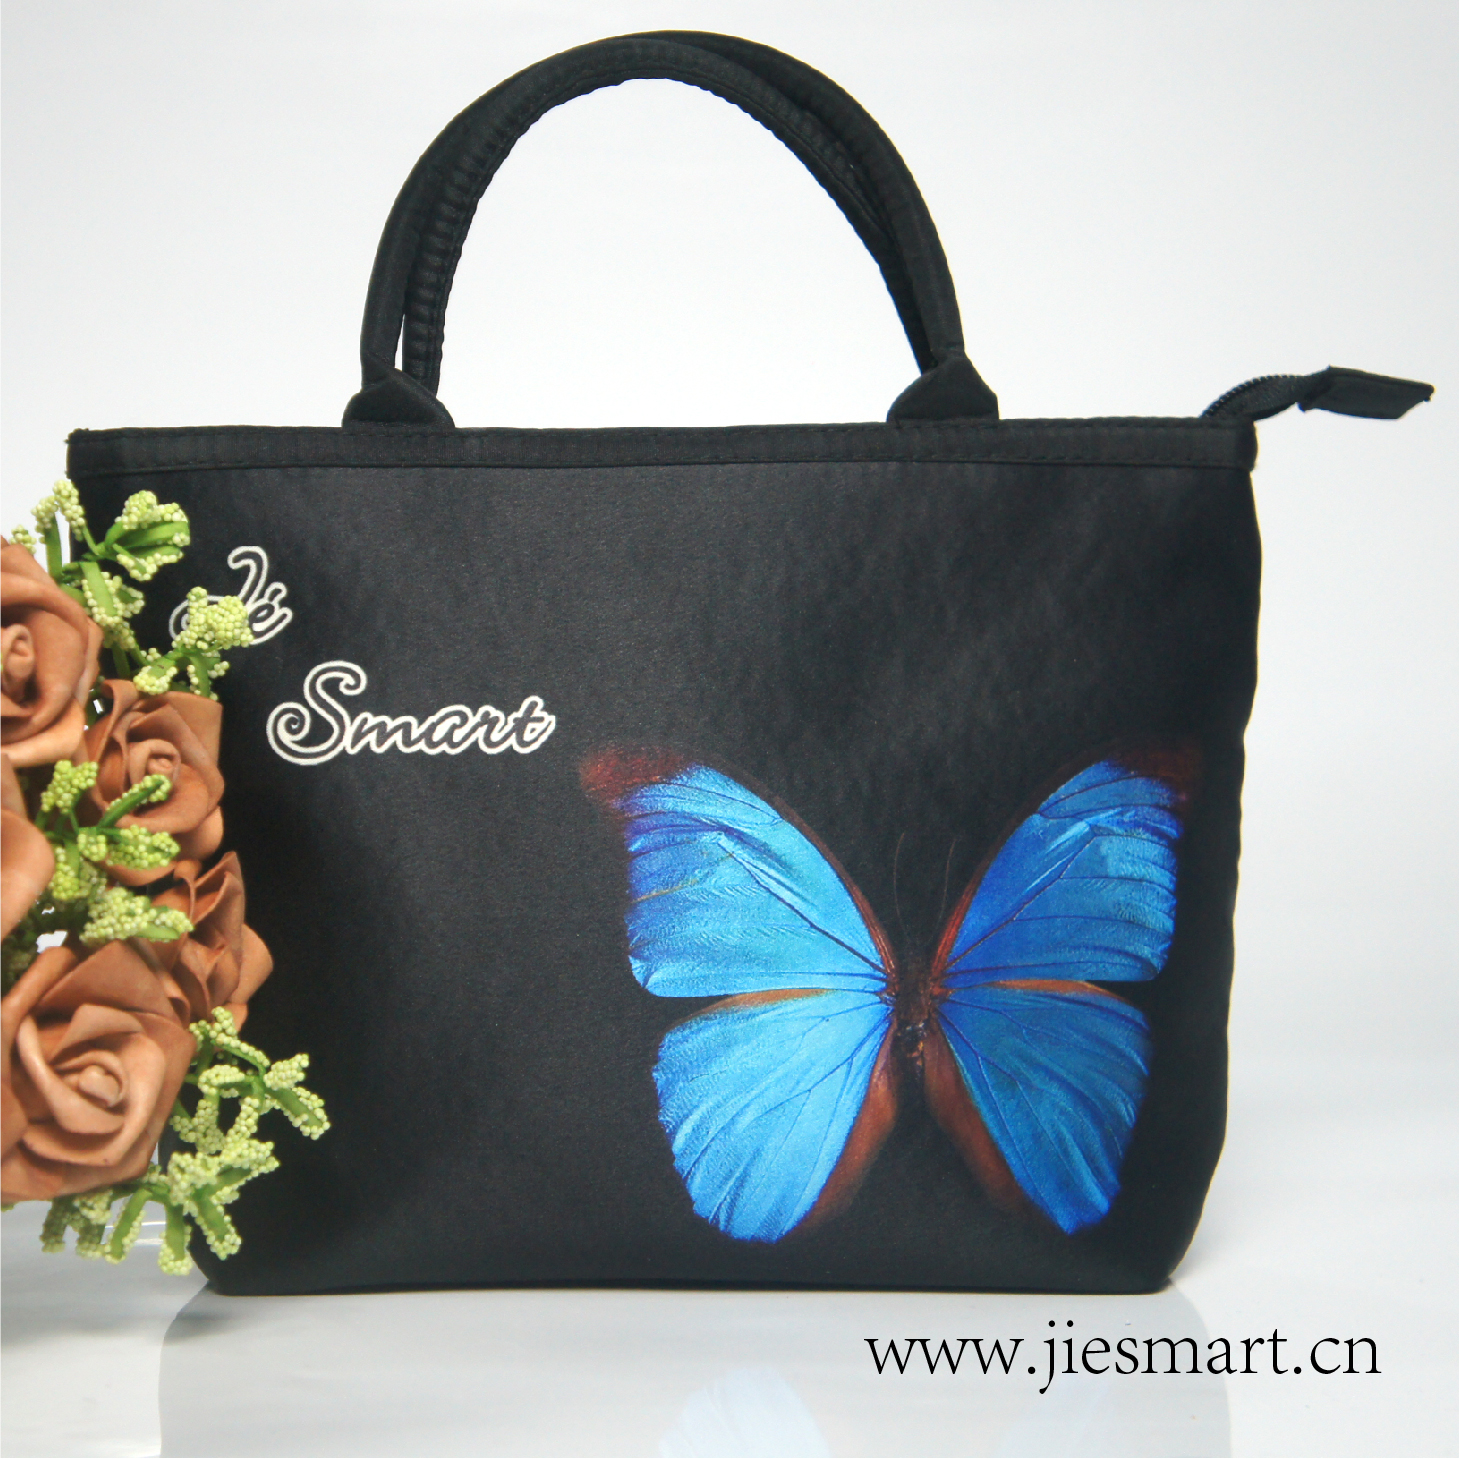 JIESMART Butterfly series CARMEN handbag S sublimation printing custom printing bag souvenirs art culture collection